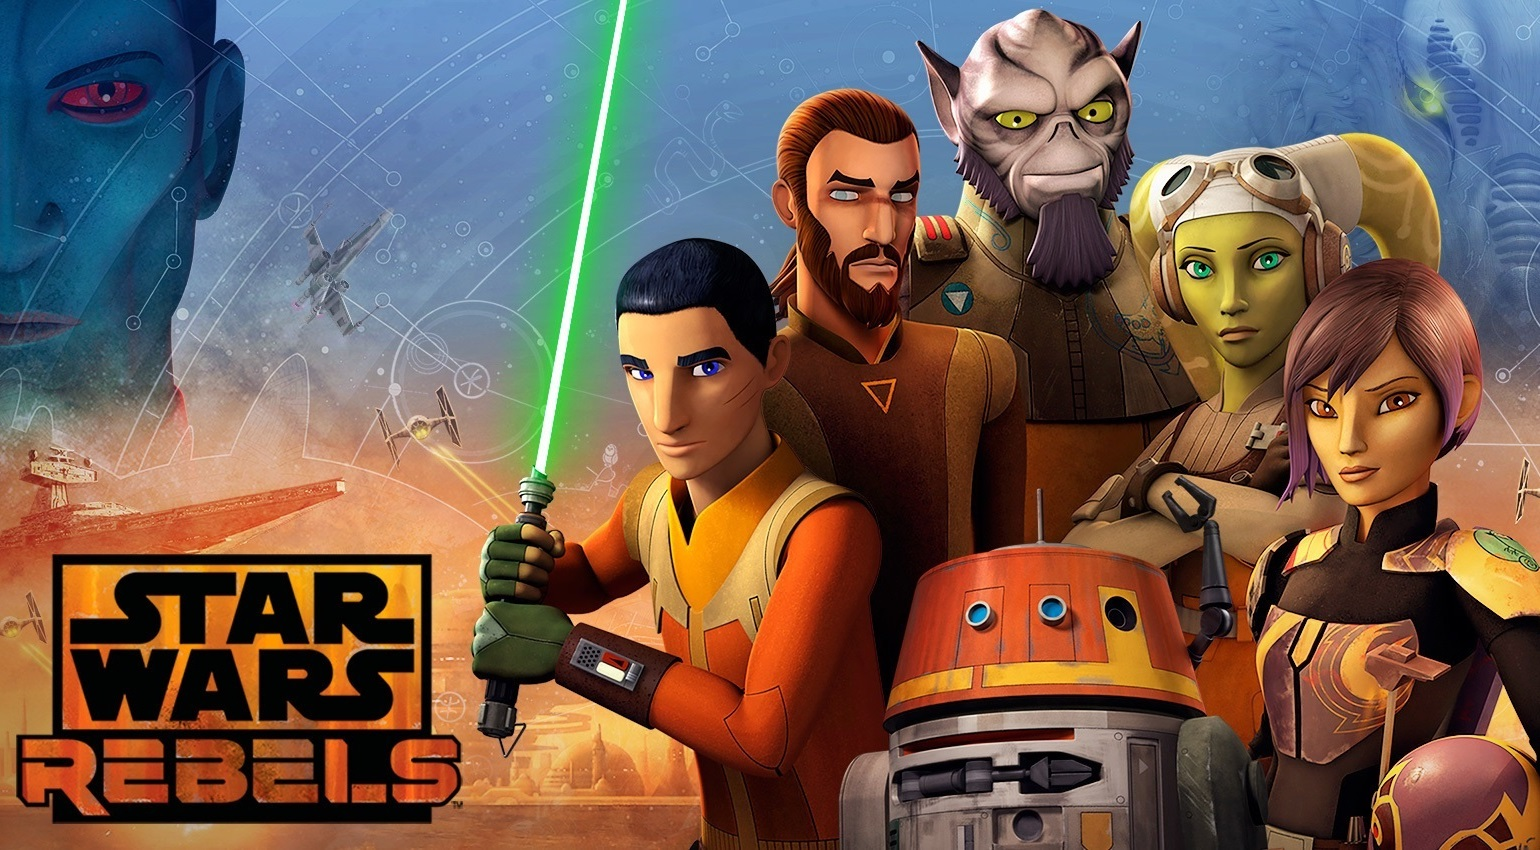 Un ultimo tuffo in Star Wars Rebels!